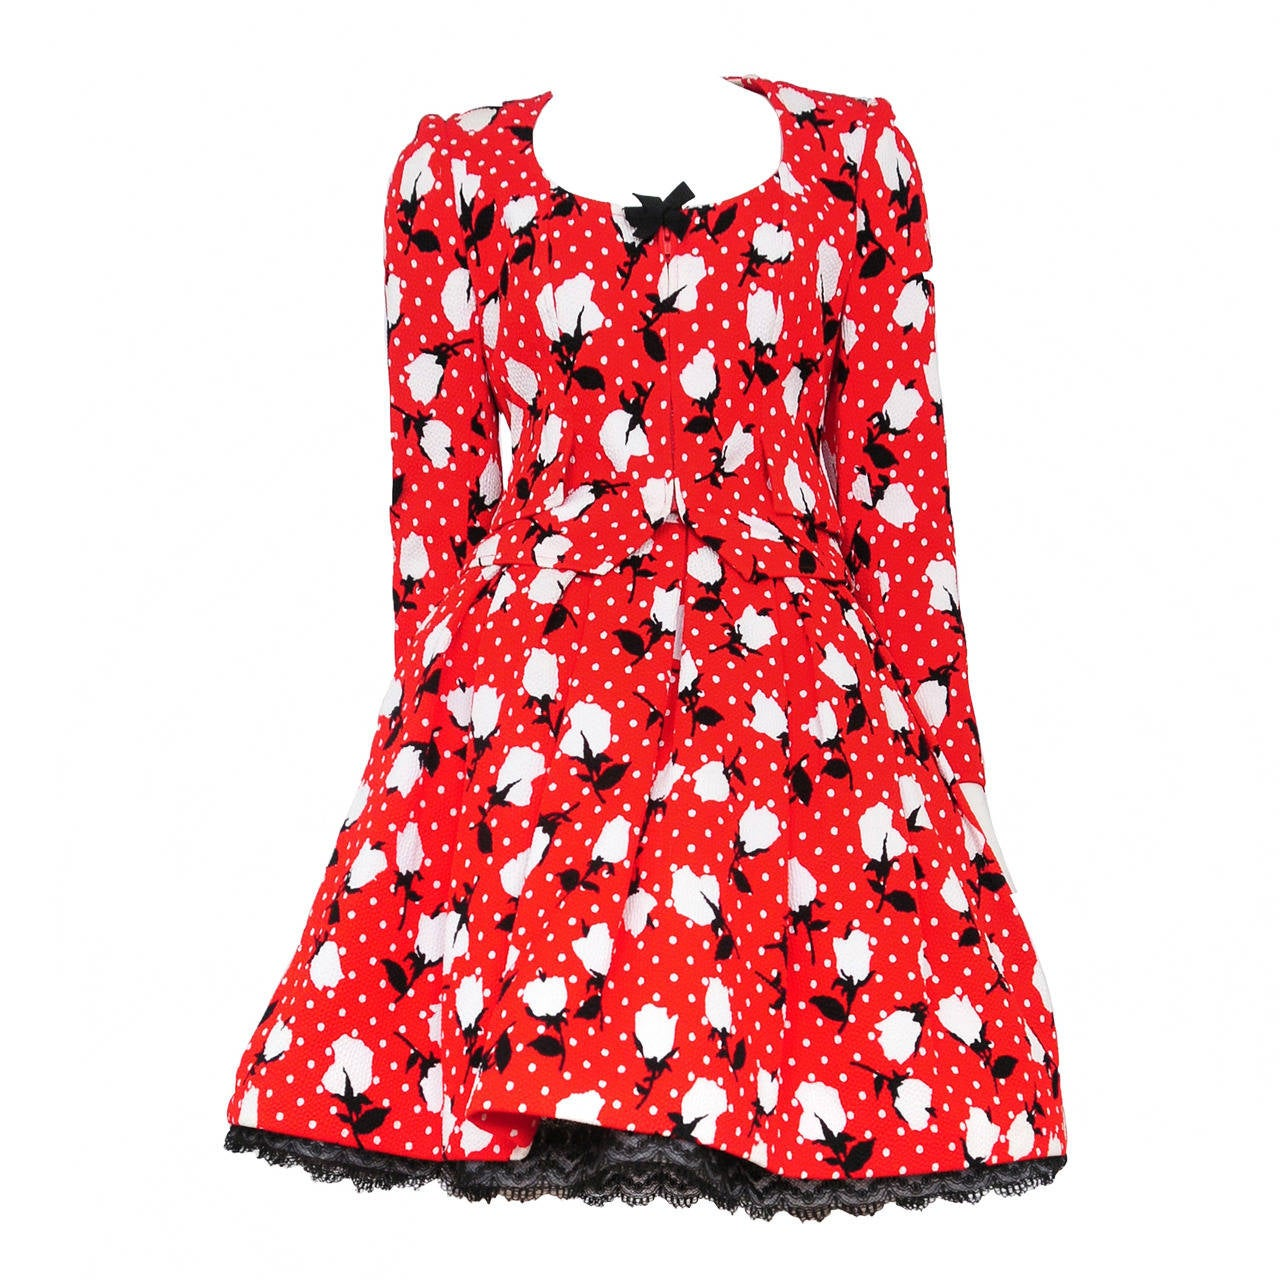 Lacroix Red Floral Ensemble